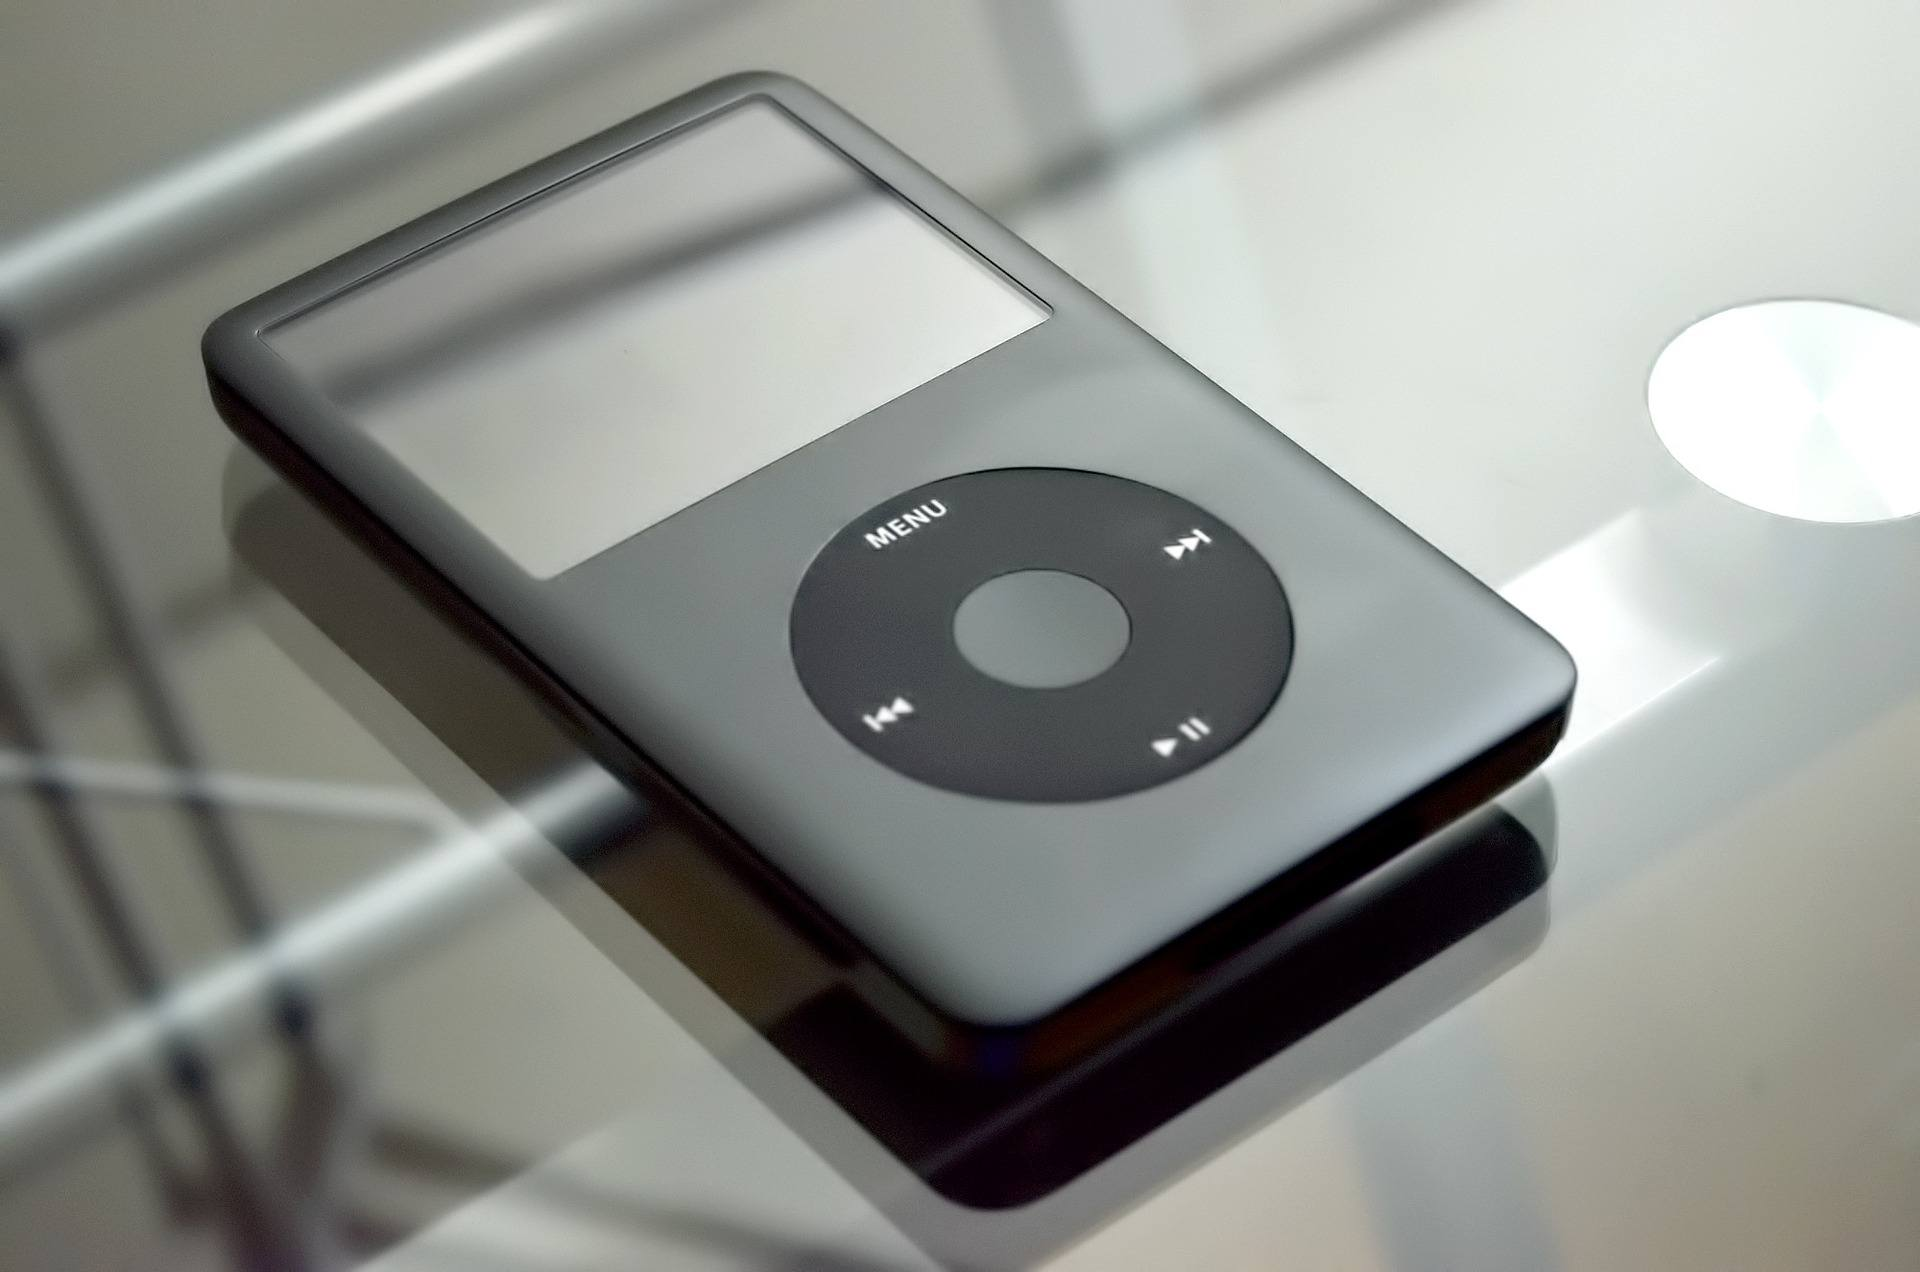 Ipod Mp3 Player im Test